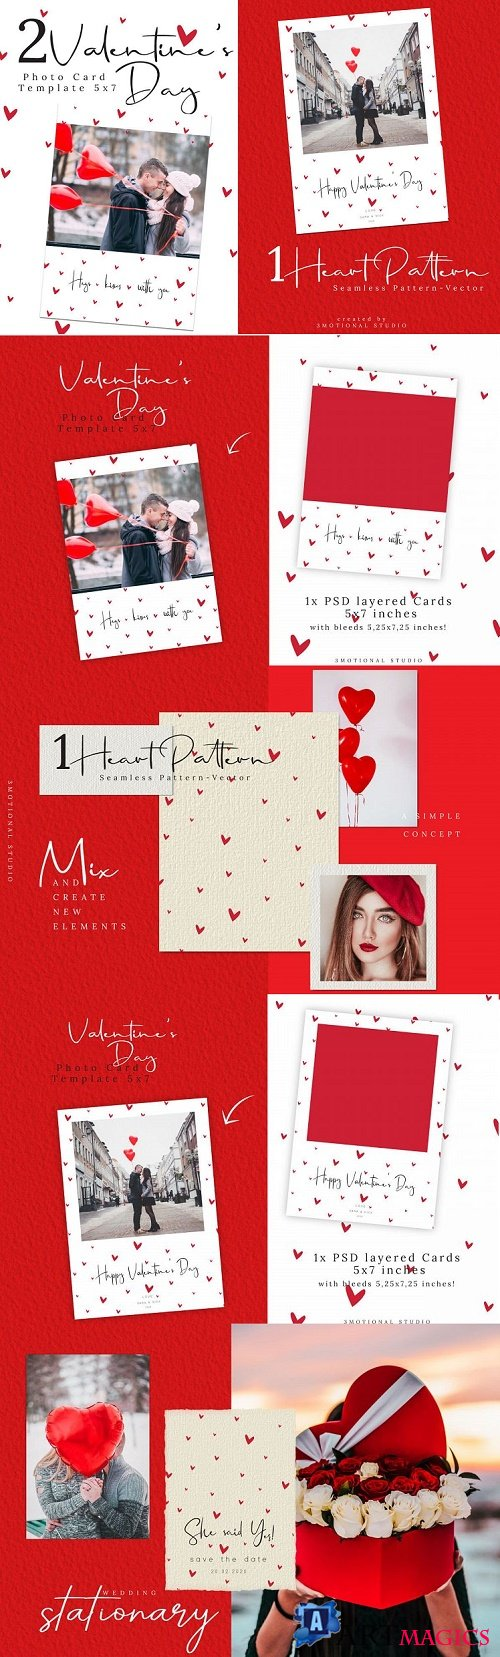 Valentine's Day Photo Card Template - 415055